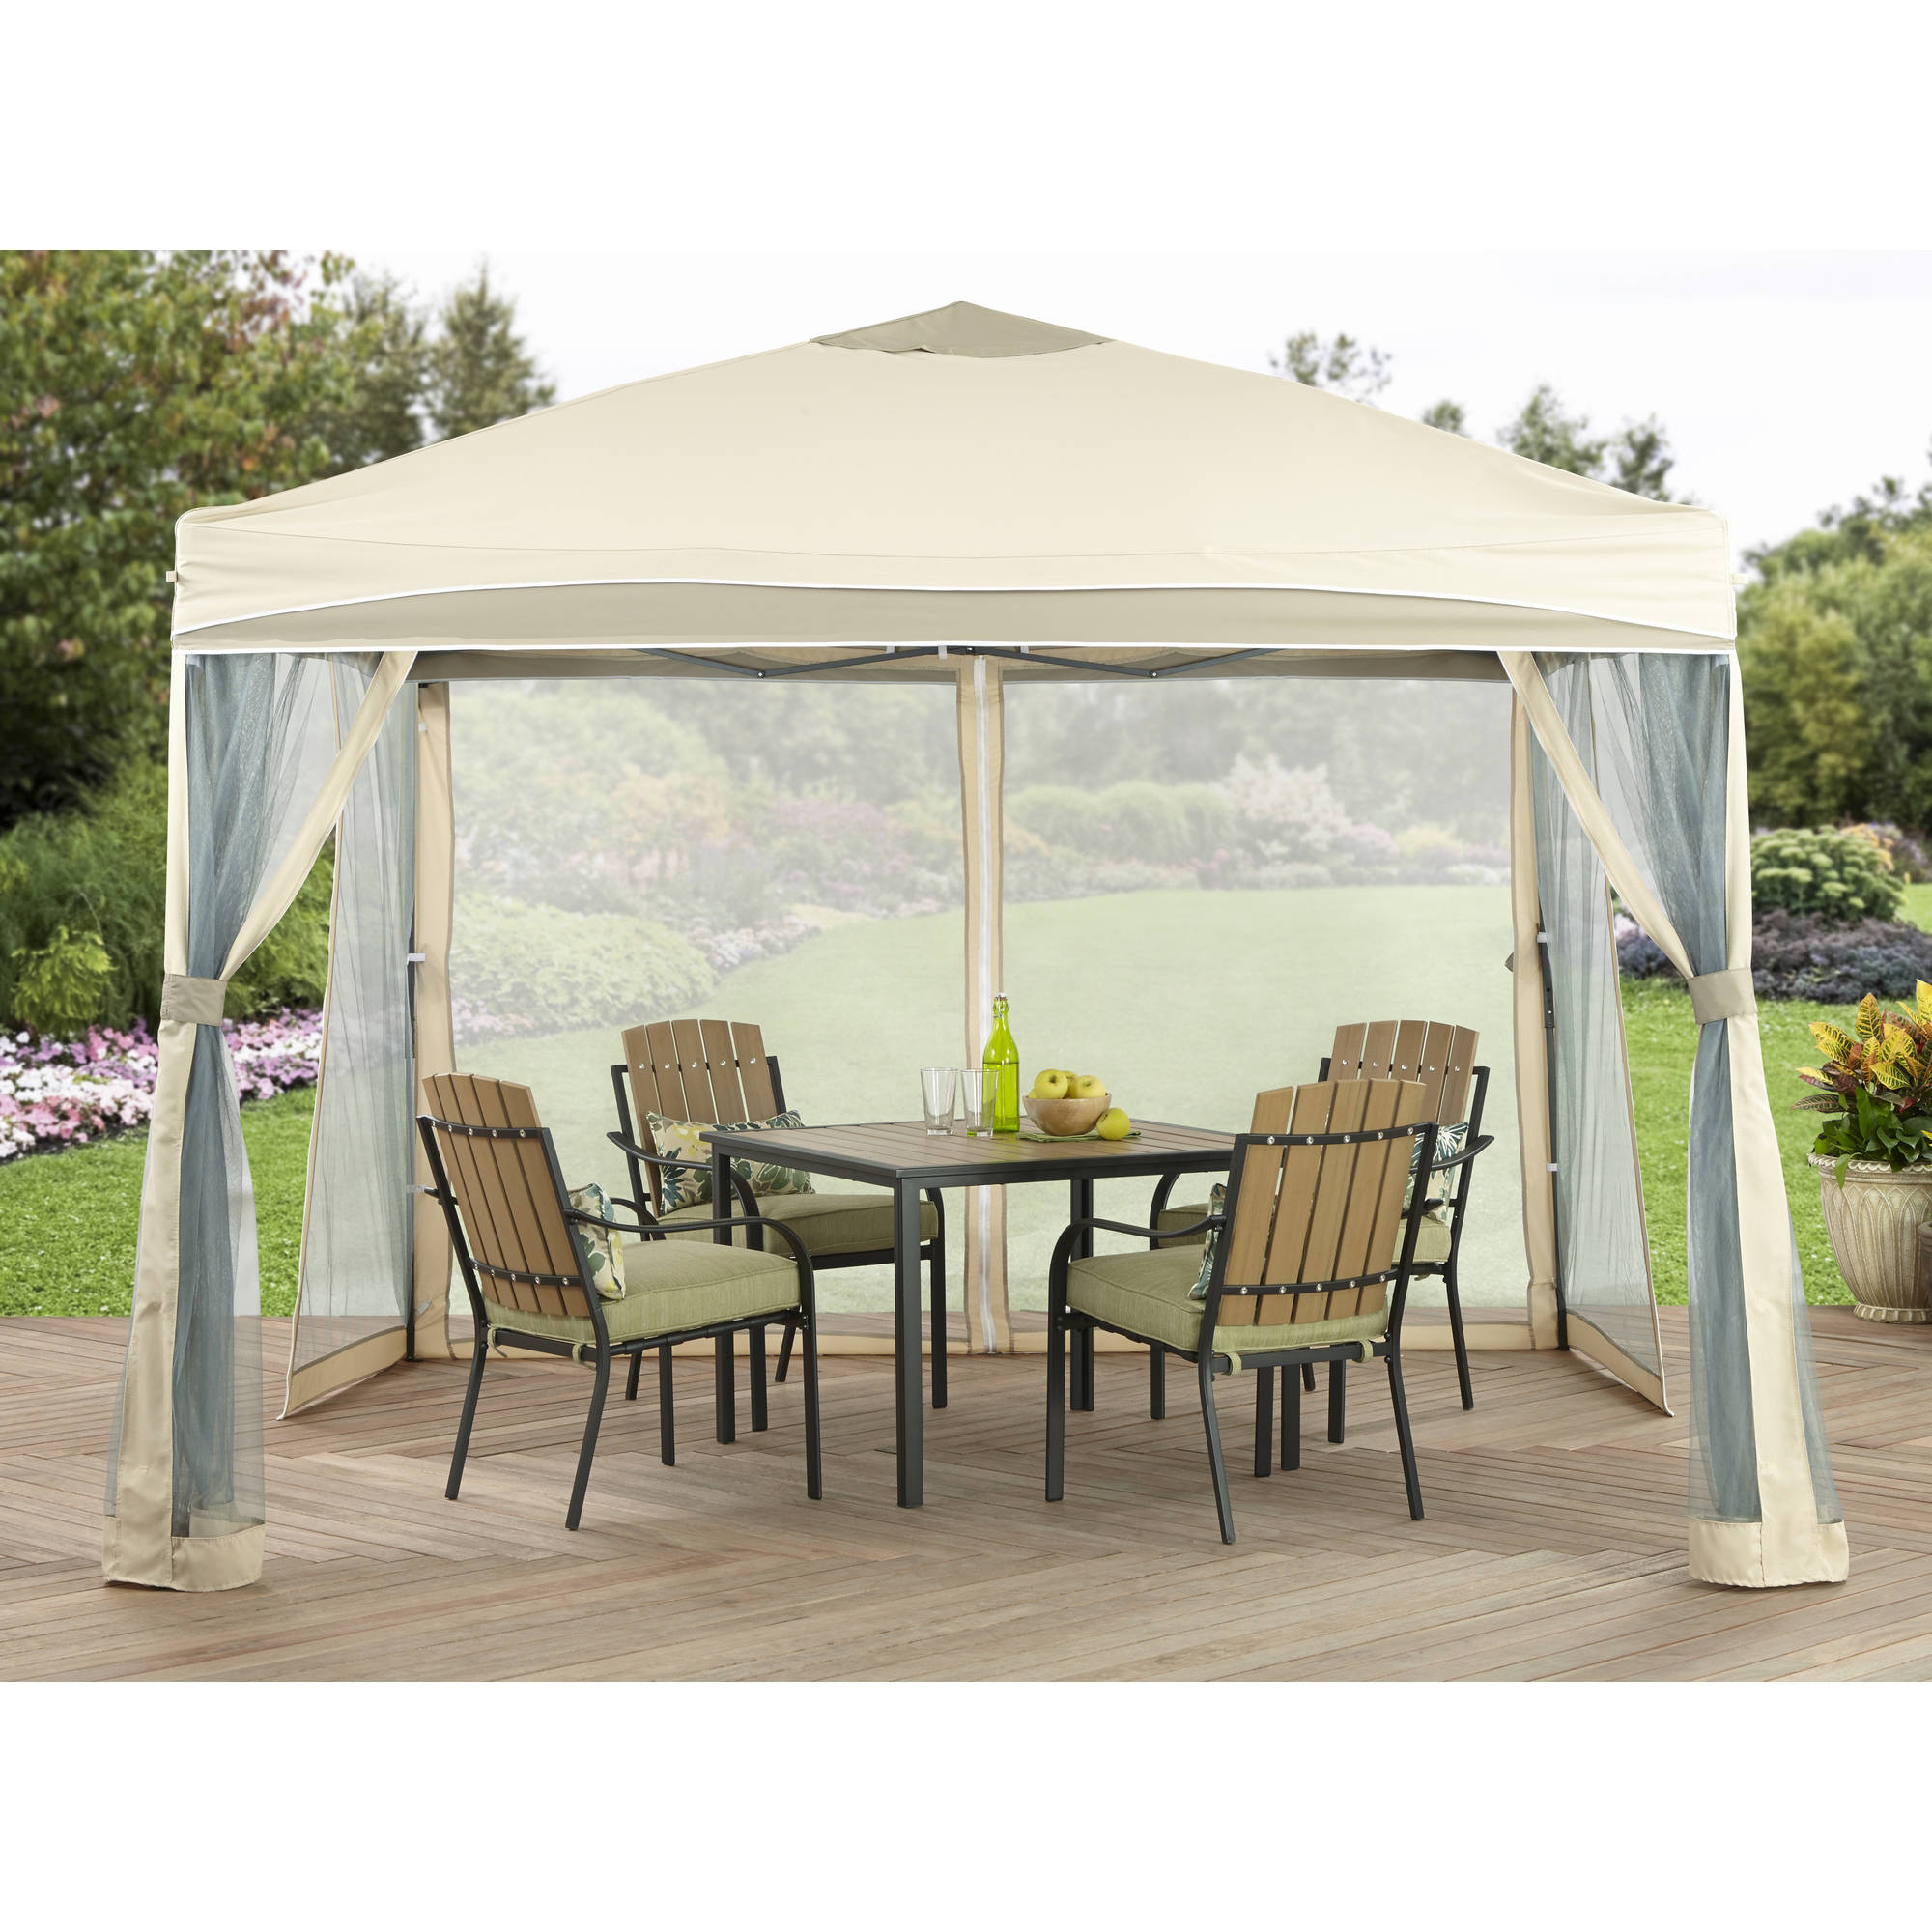 Better Homes and Gardens 10' x 10' Lawrence Portable Patio Gazebo by